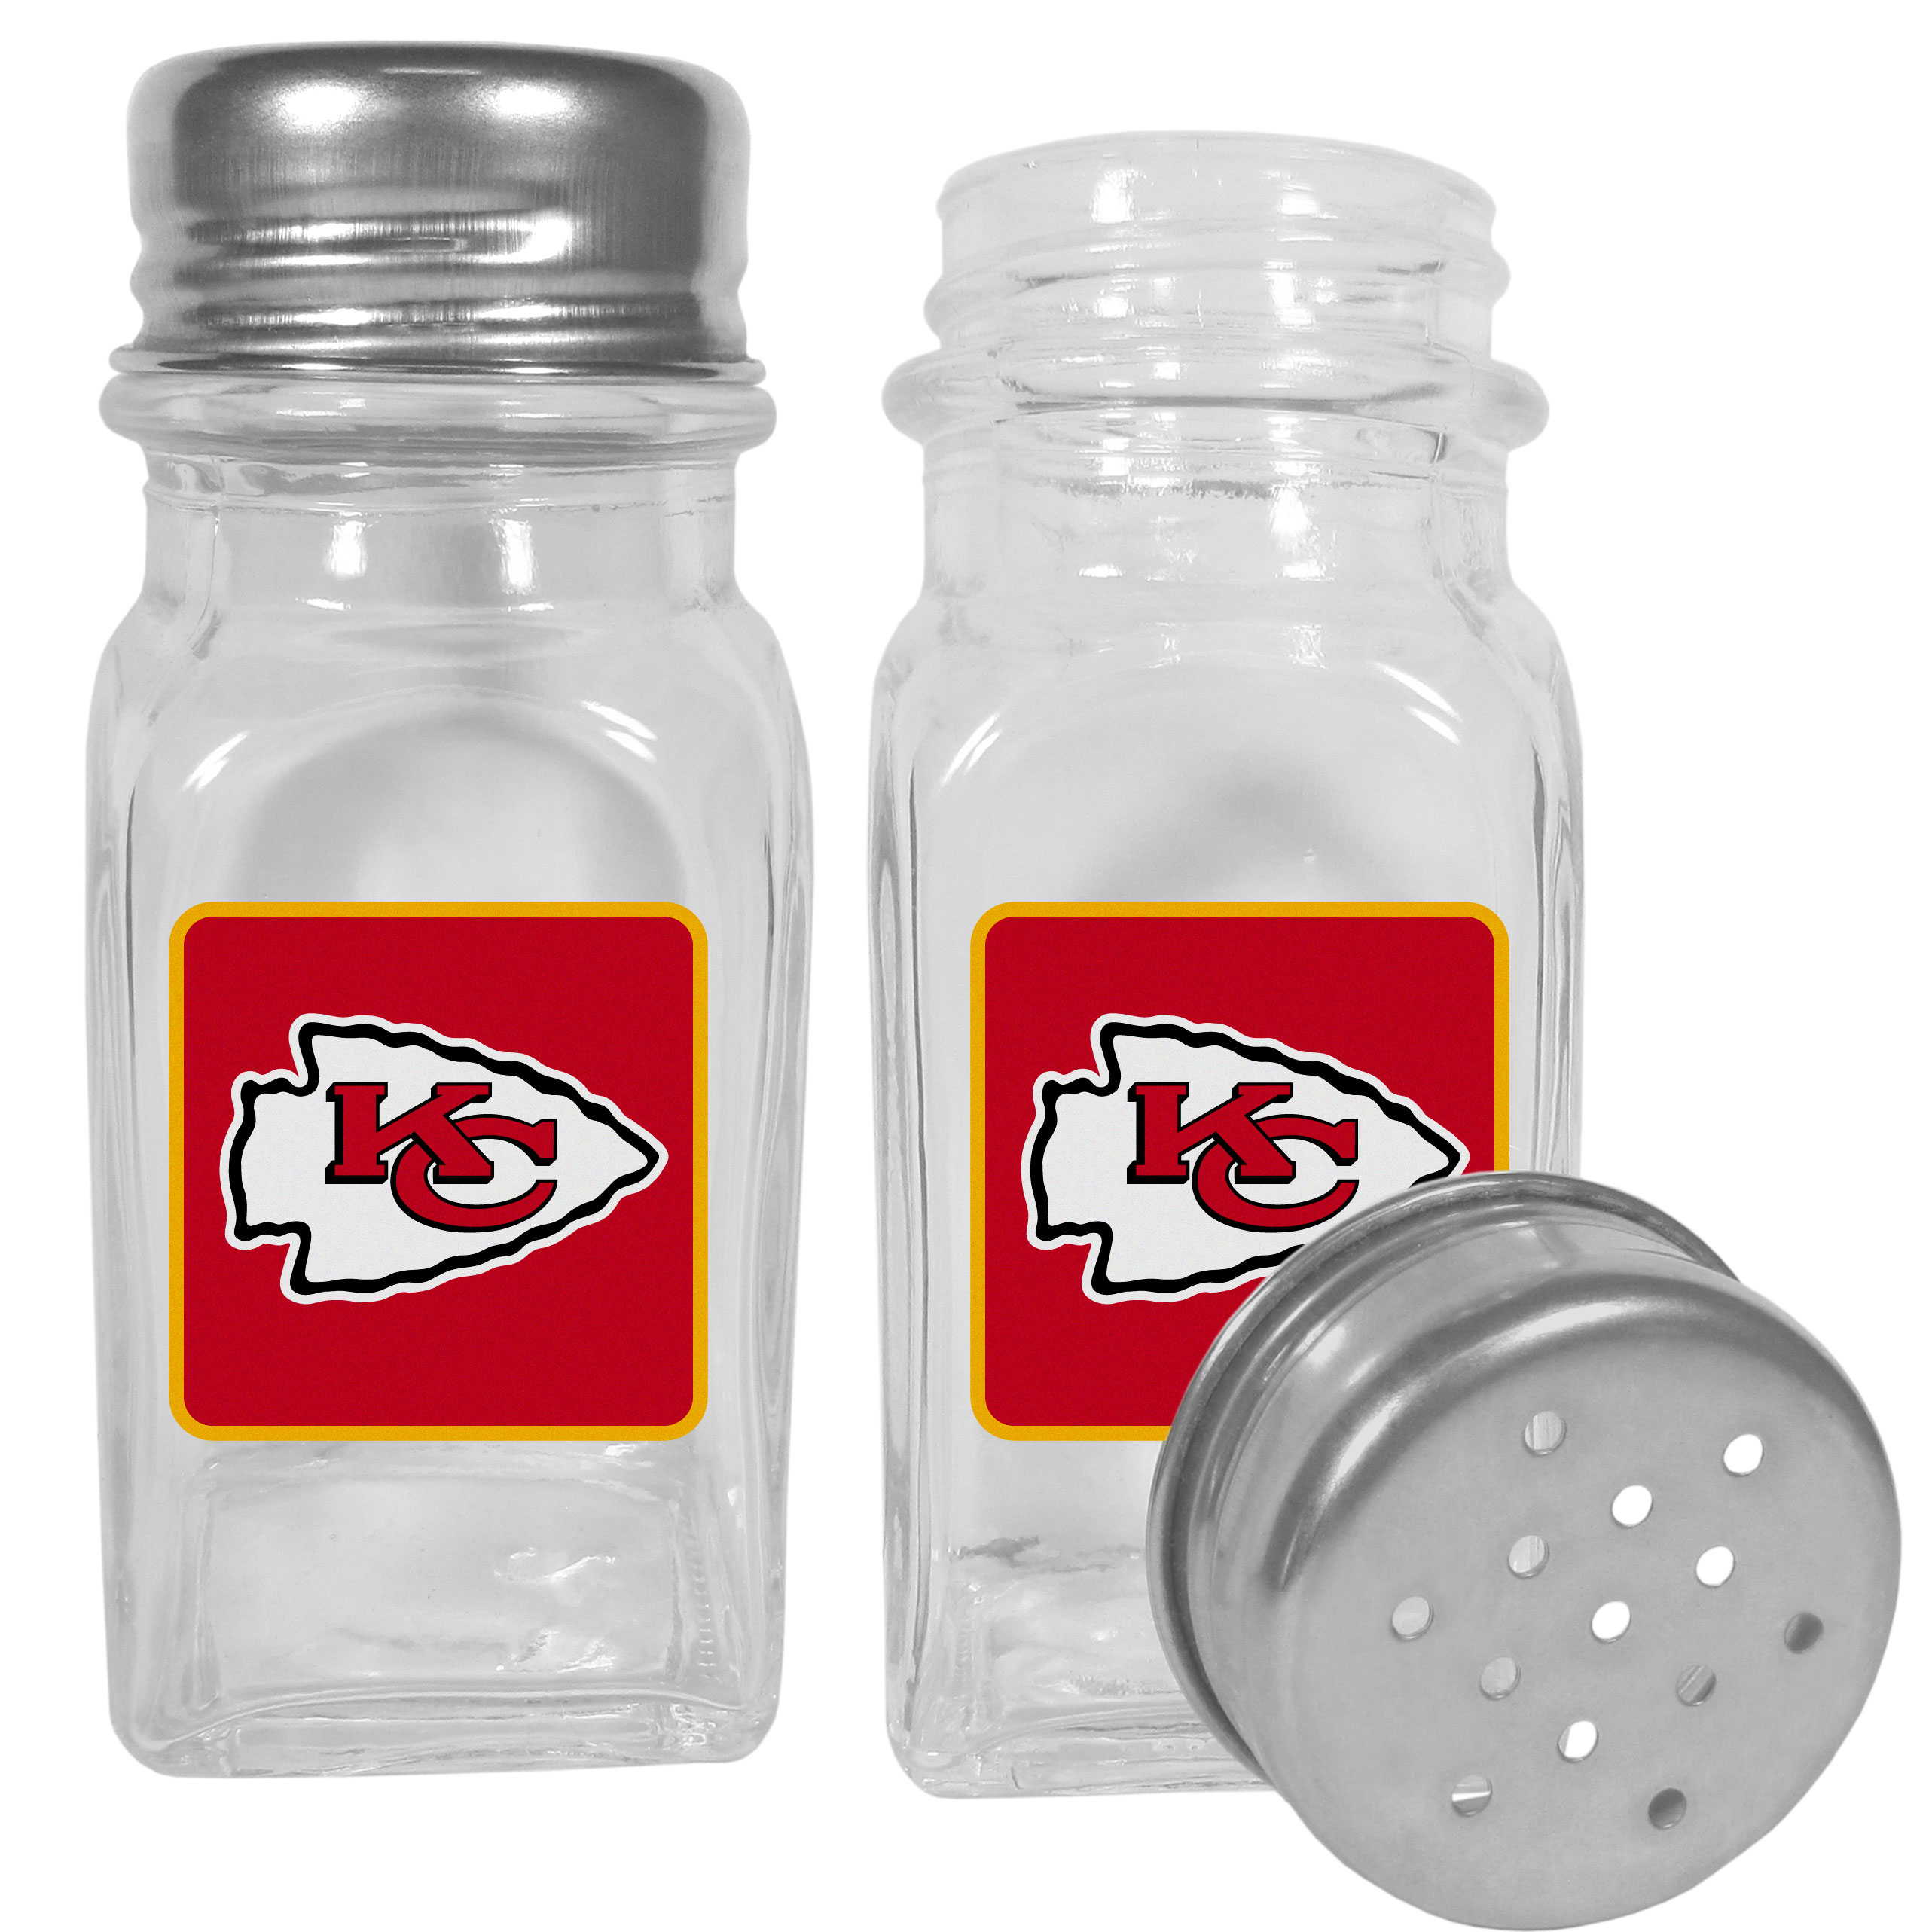 Kansas City Chiefs Graphics Salt & Pepper Shaker - No tailgate party is complete without your Kansas City Chiefs salt & pepper shakers featuring bright team logos. The diner replica salt and pepper shakers are glass with screw top lids. These team shakers are a great grill accessory whether you are barbecuing on the patio, picnicing or having a game day party.